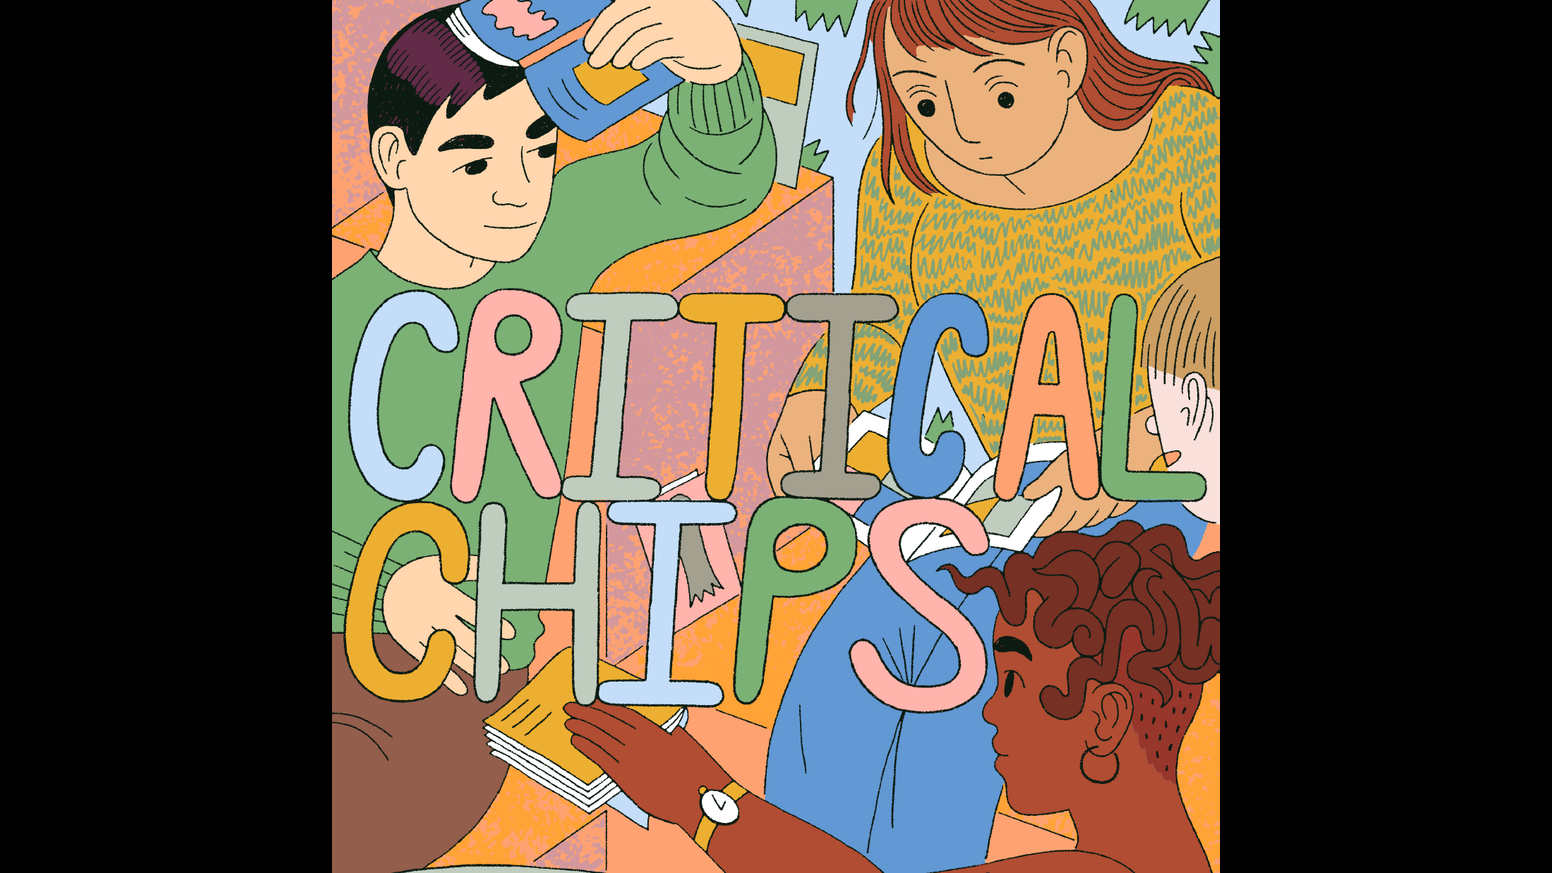 critical chips a contemporary comics essay zine by zainab akhtar critical chips a contemporary comics essay zine